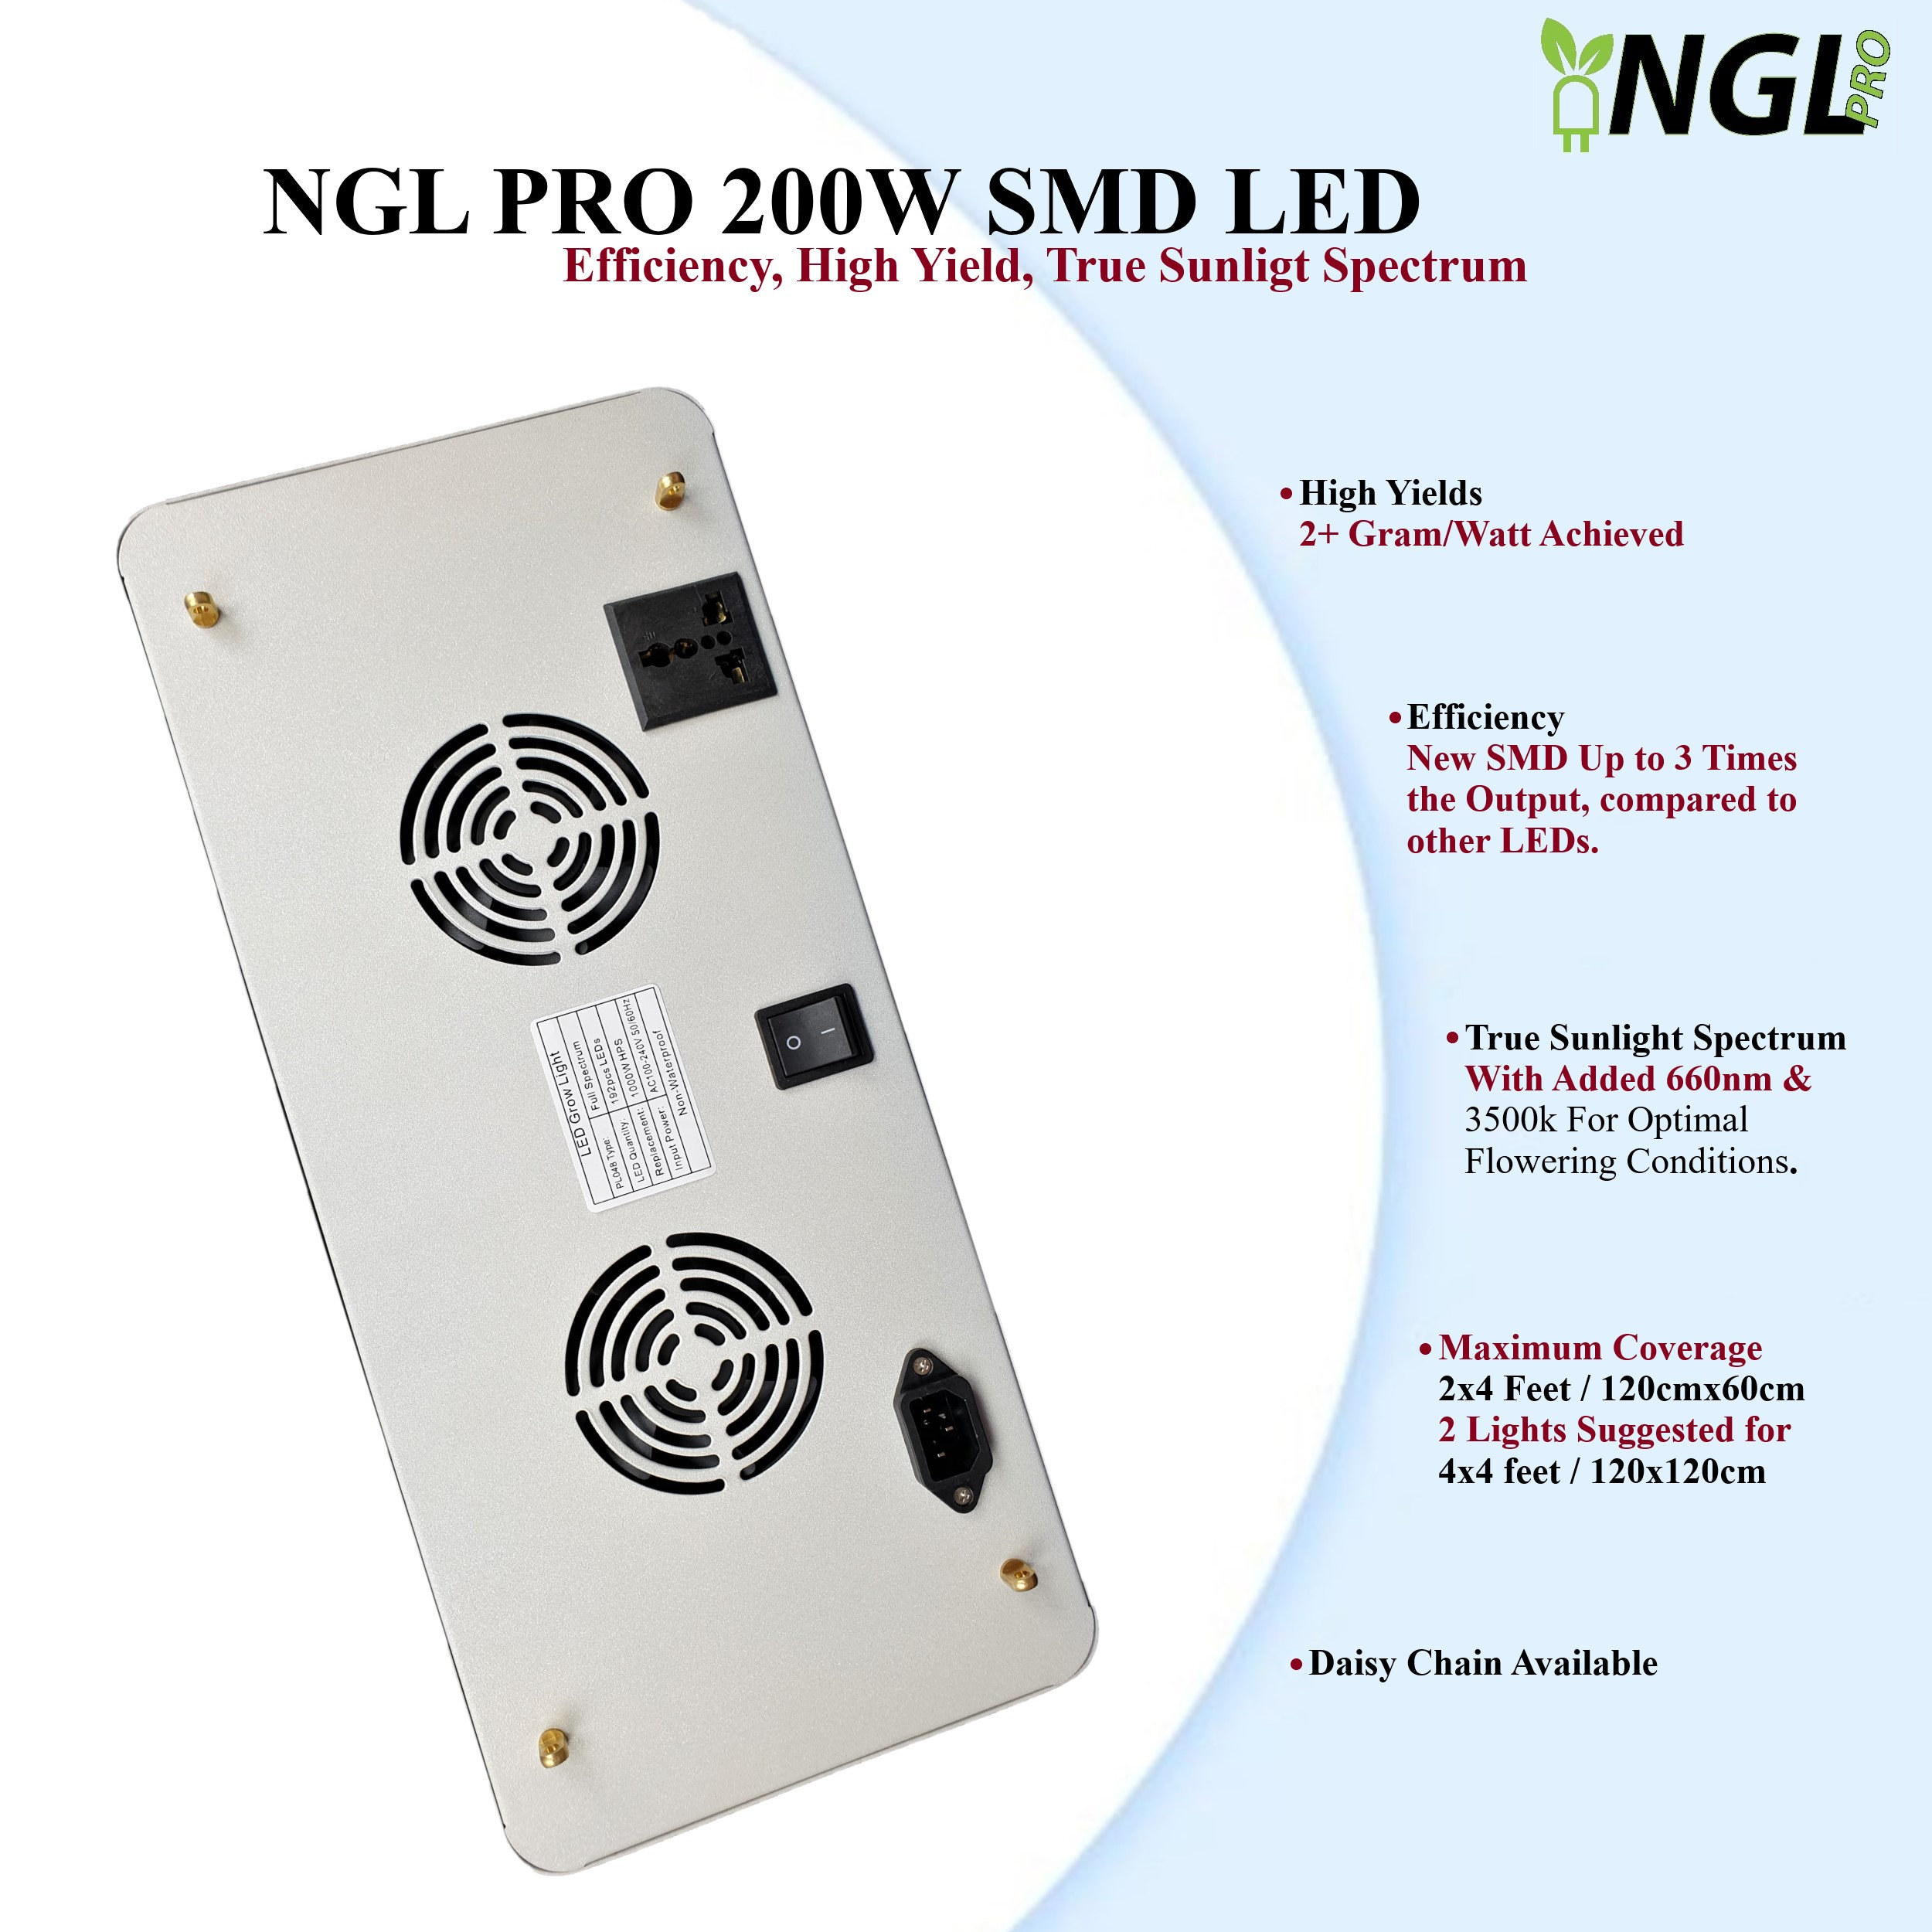 NGL PRO 200W SMD | New Site